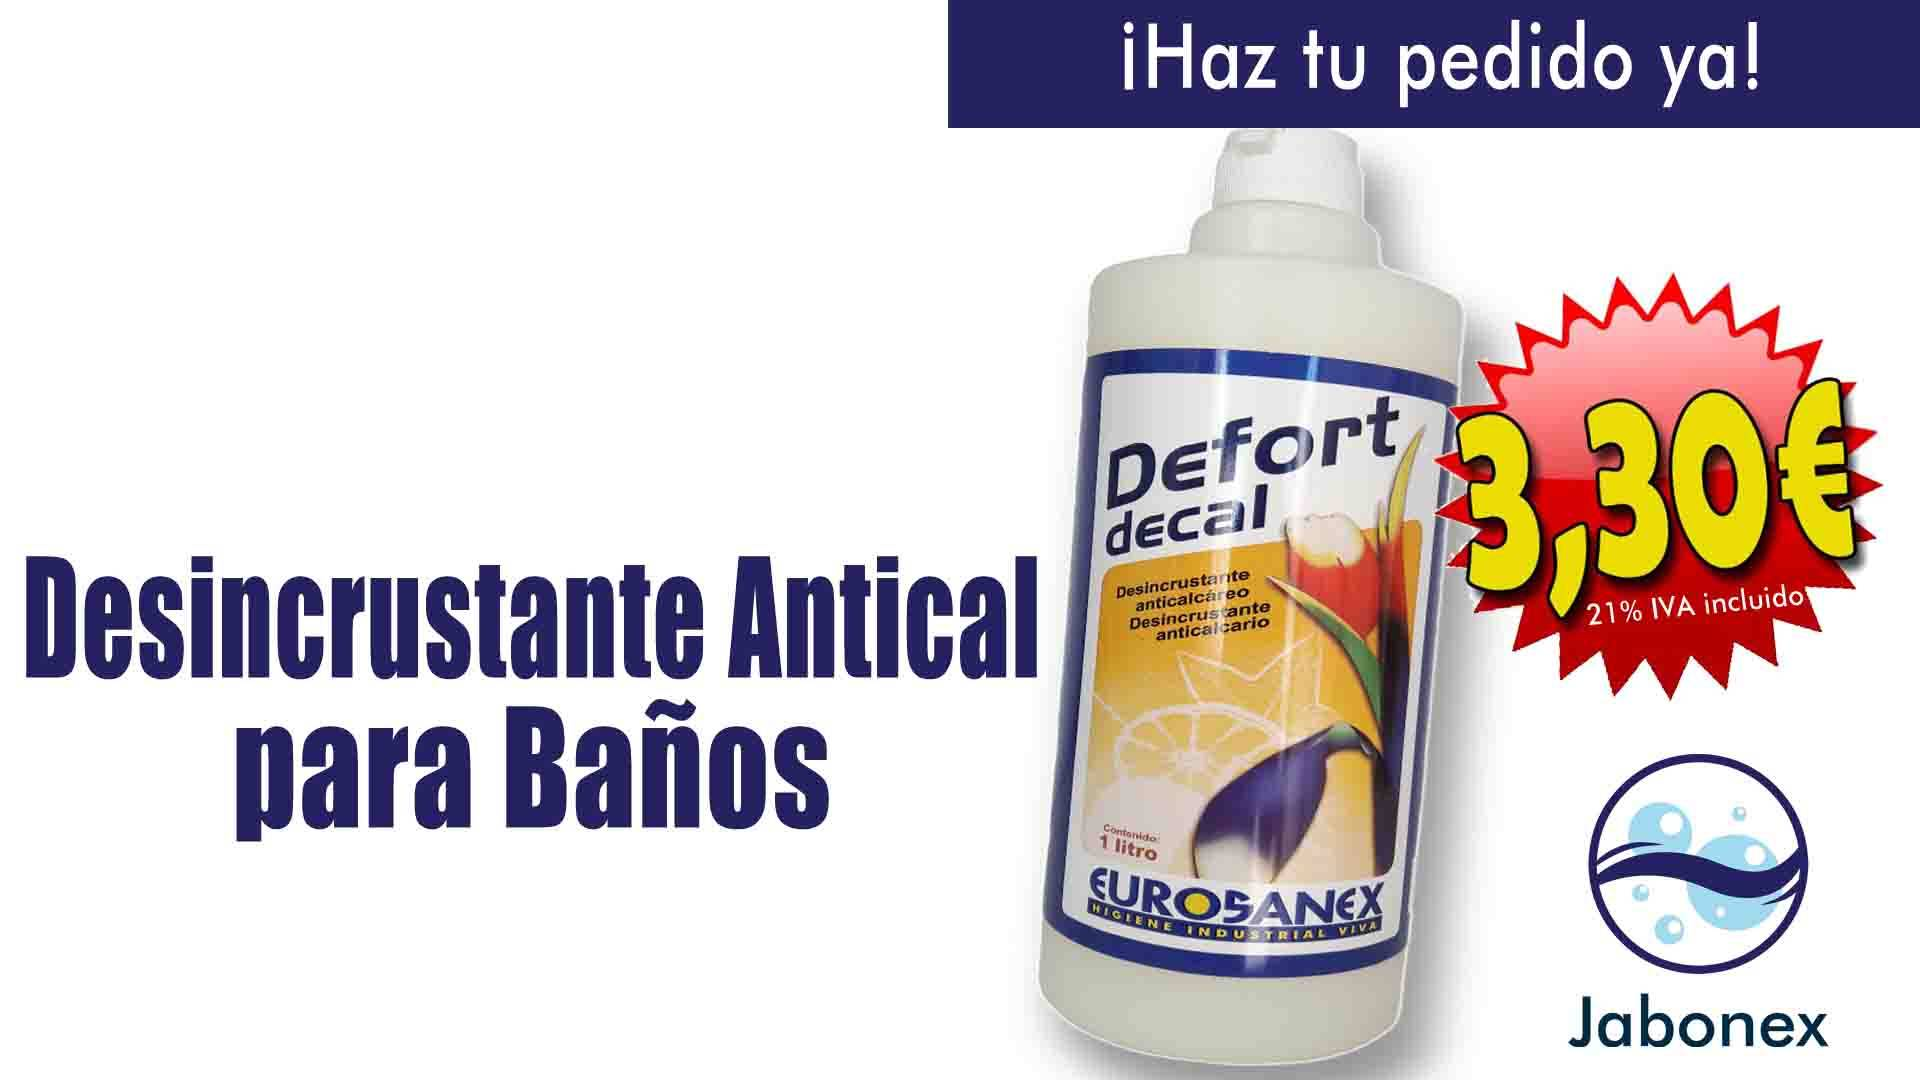 Defort Decal: Desincrustante antical